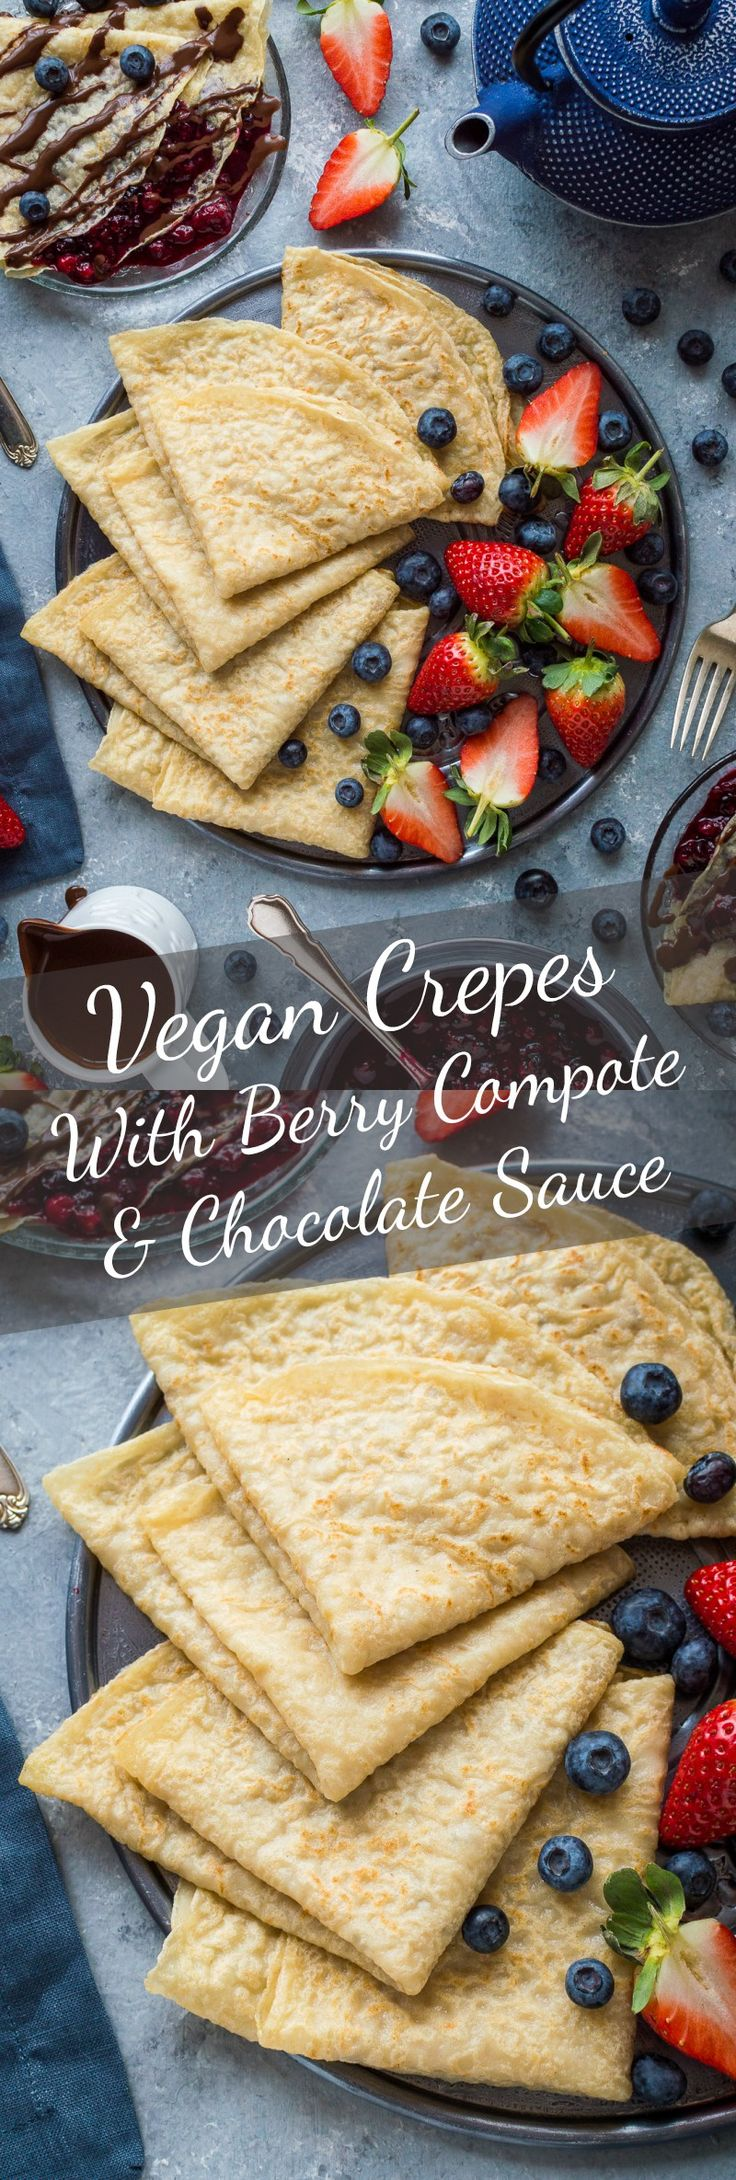 Vegan crepes with berry compote and chocolate sauce - easy, tender, egg and dairy free pancakes with a delectable chocolate sauce and mixed berry compote. Perfect for pancake day! #vegan #plantbased #pancakes #breakfast